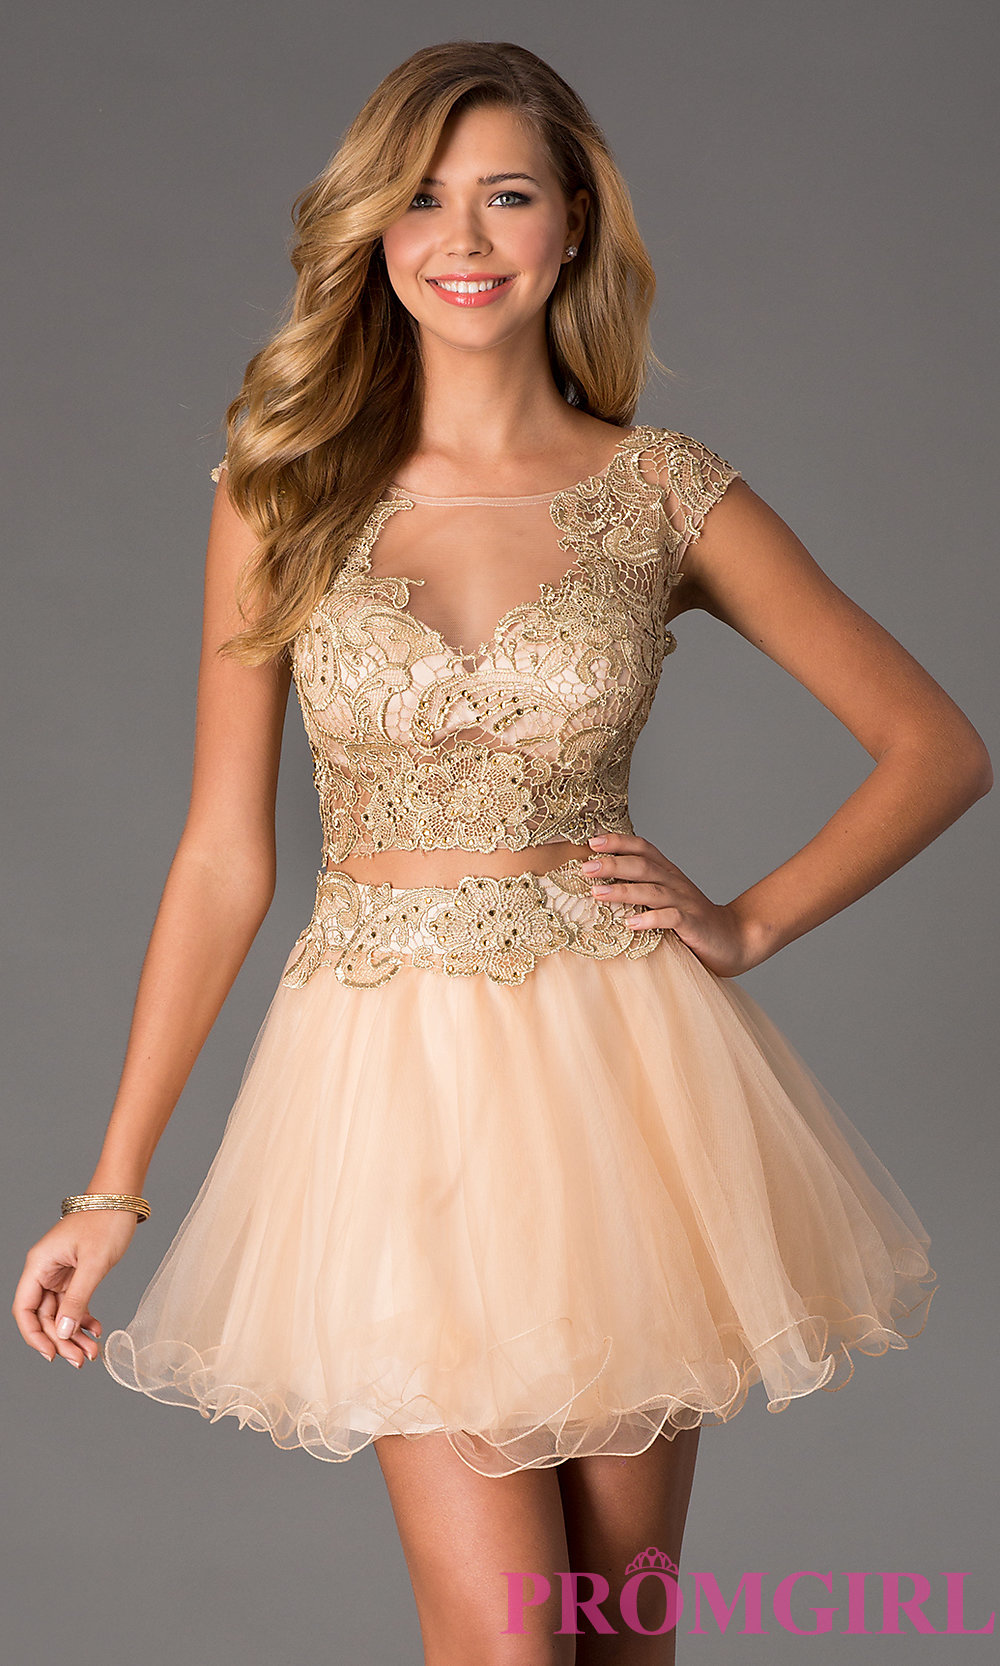 Dress Prom Dress Where Can I Get This Dress Dress Mini Gold